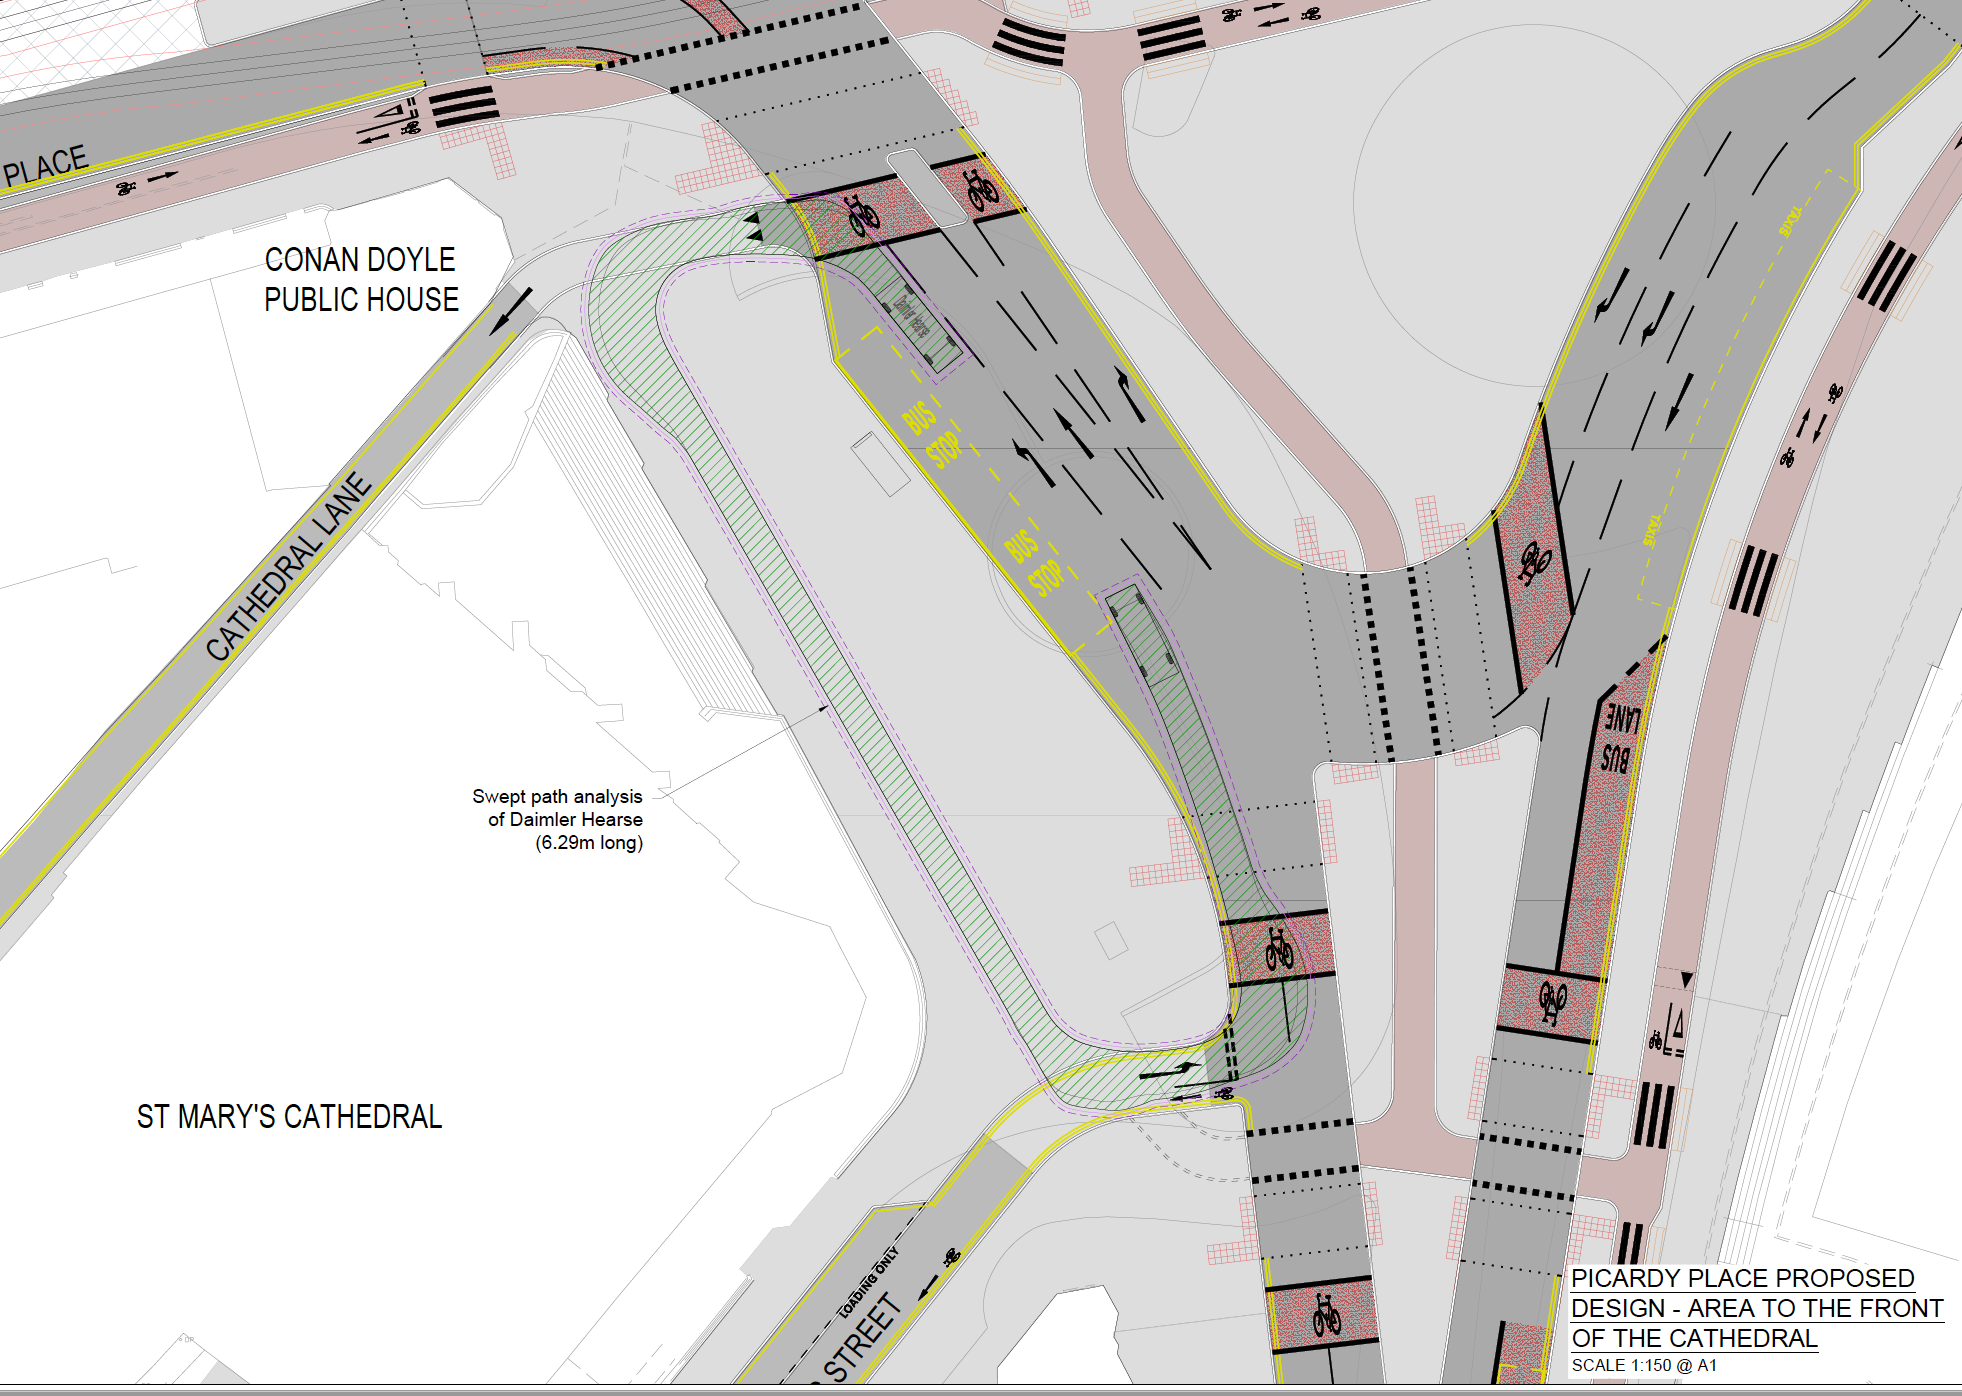 Picardy Place Proposed Layout, 25 January 2018 - City of Edinburgh Council